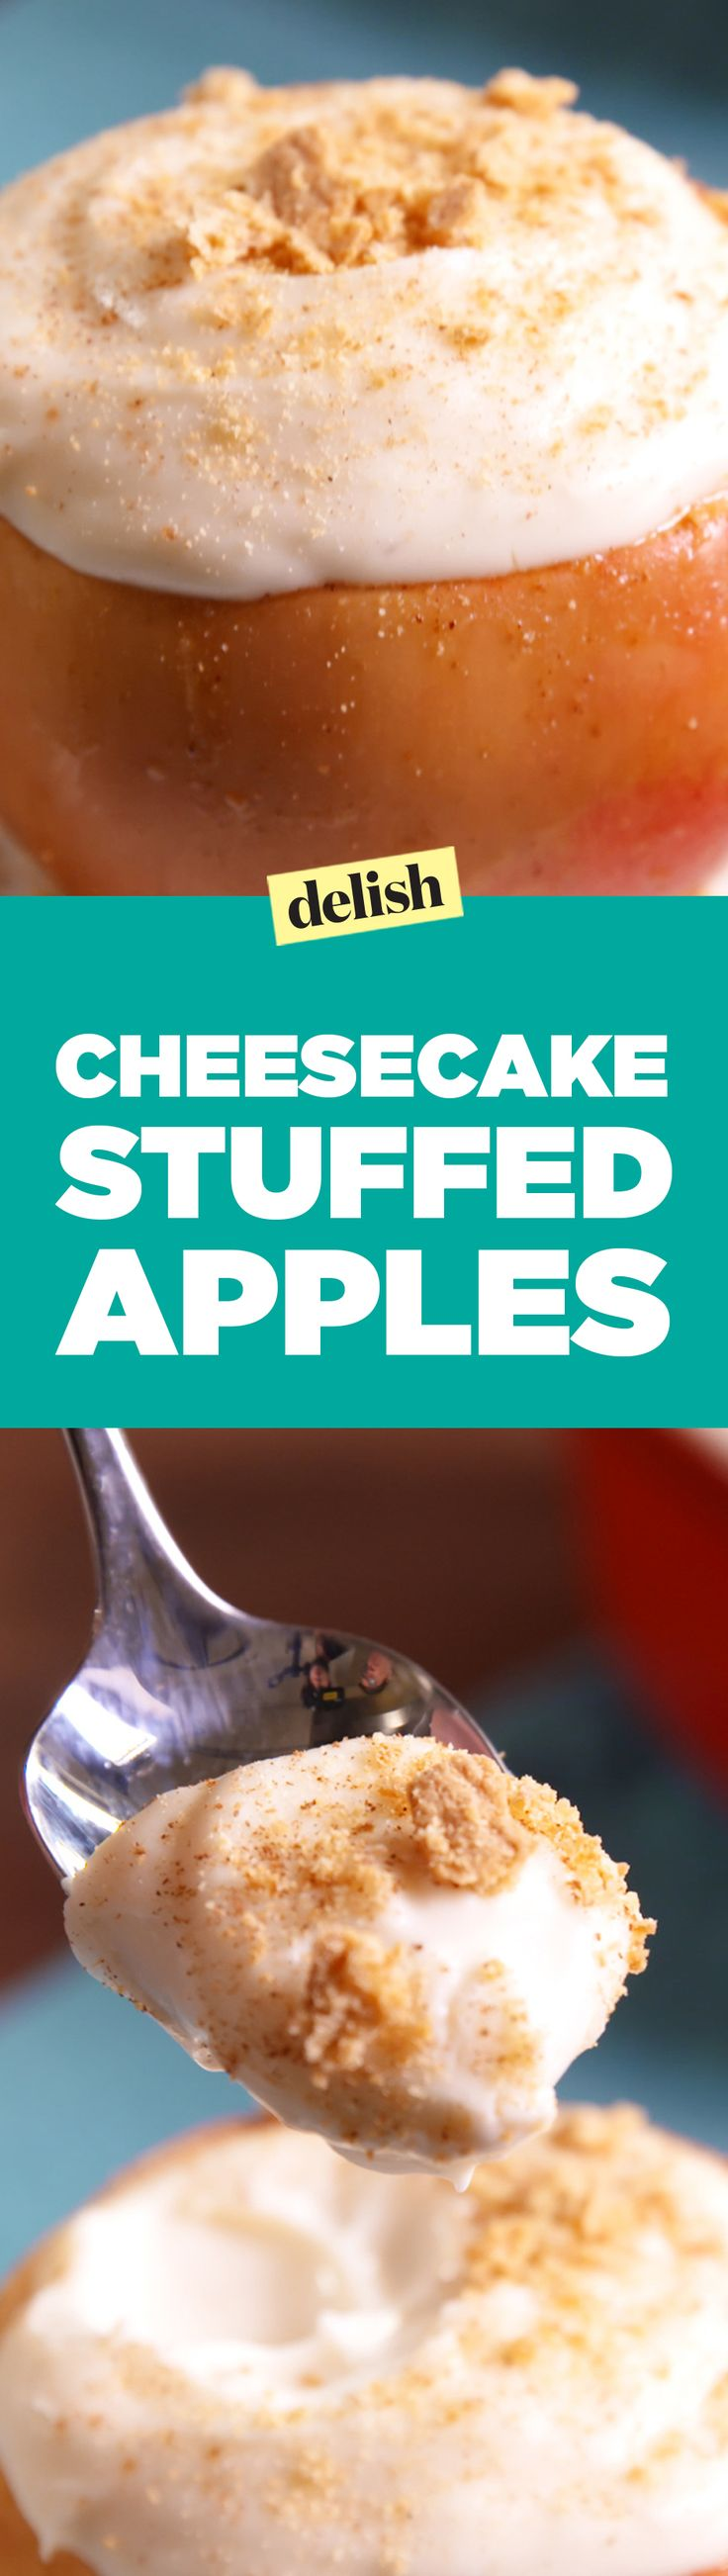 These cheesecake-stuffed apples are the fall dessert you didn't know you needed. Get the recipe on Delish.com.